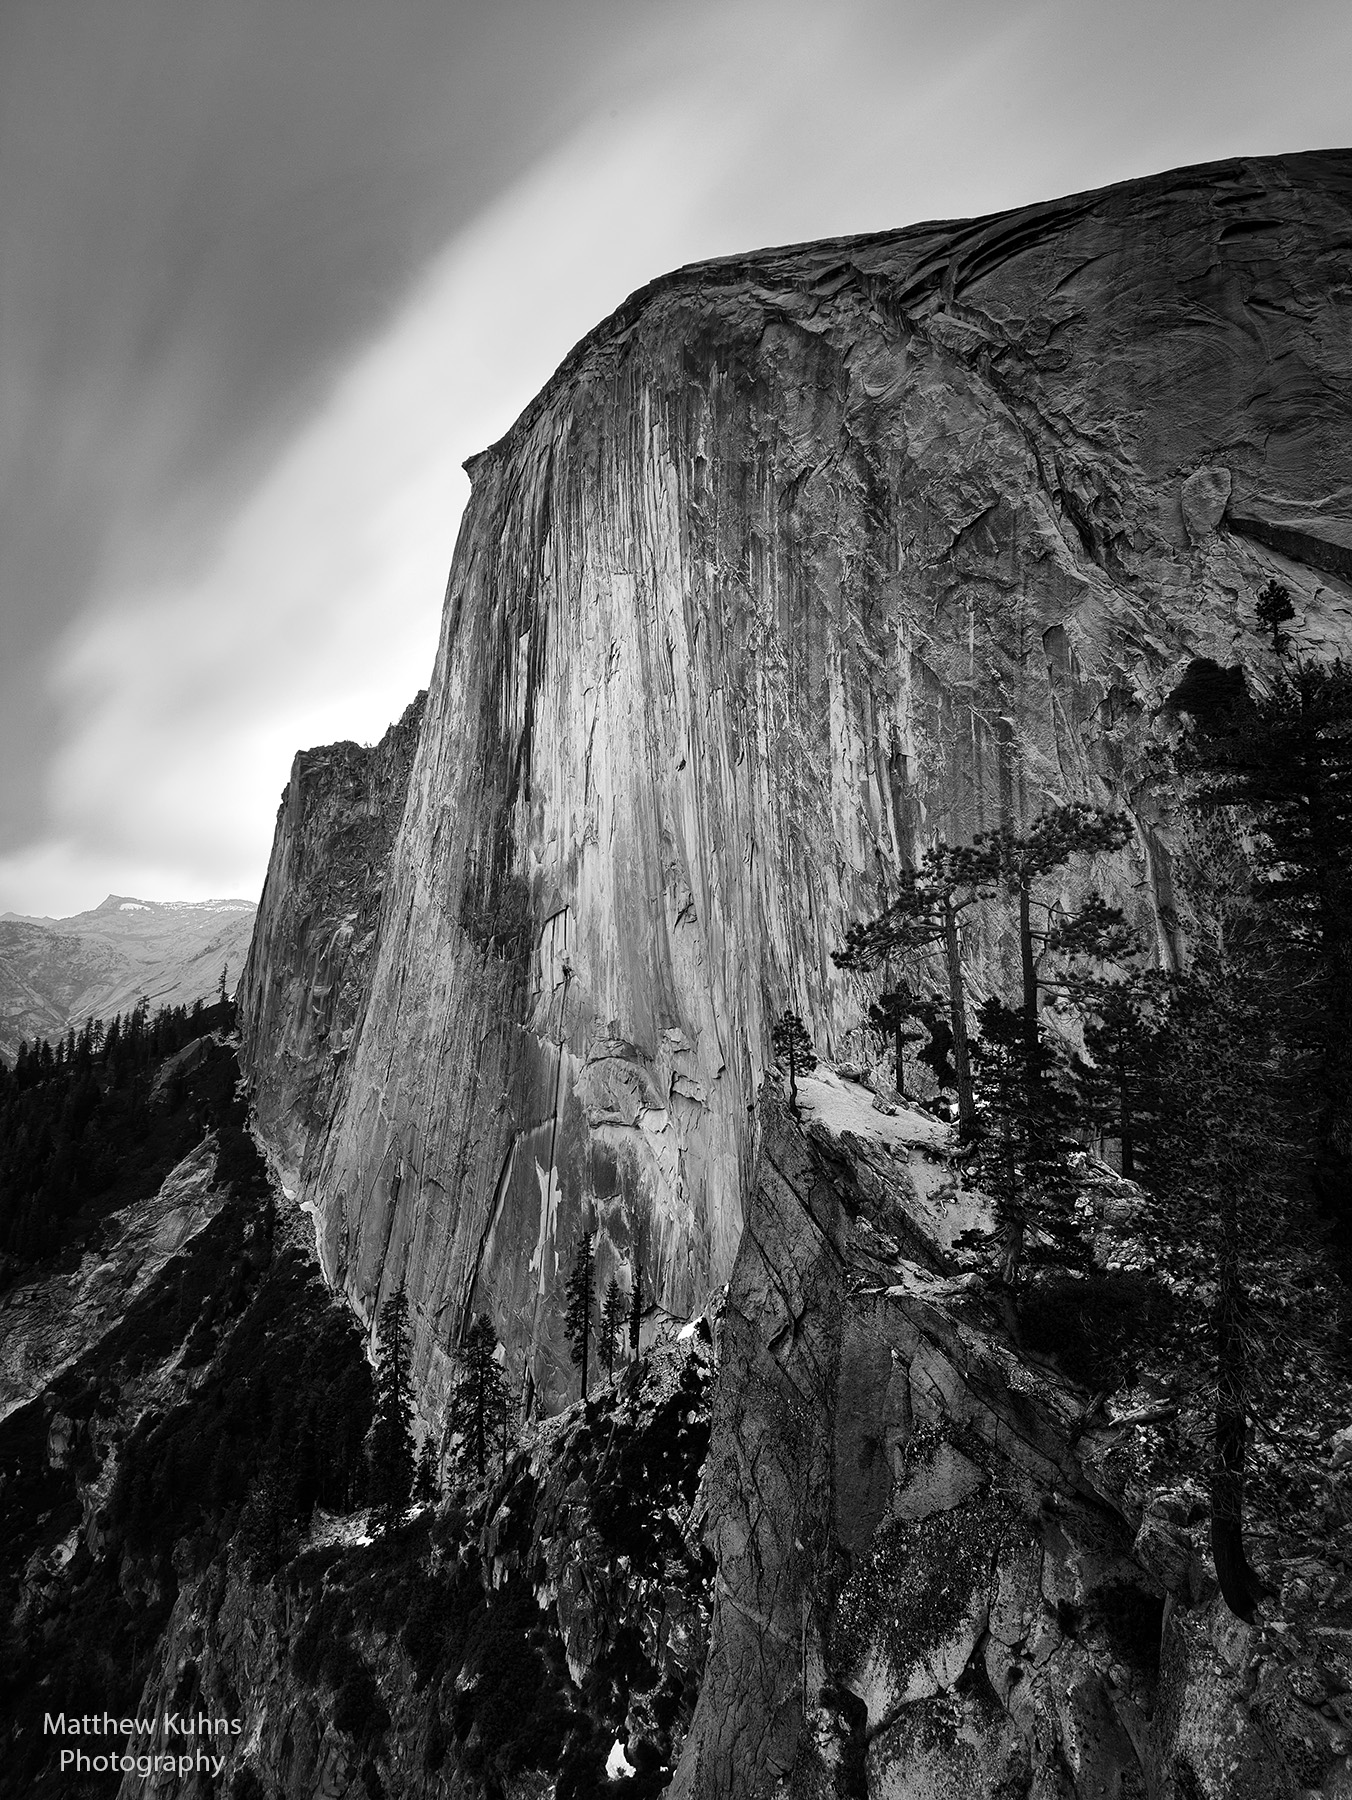 A cloudy day on the face of Half Dome